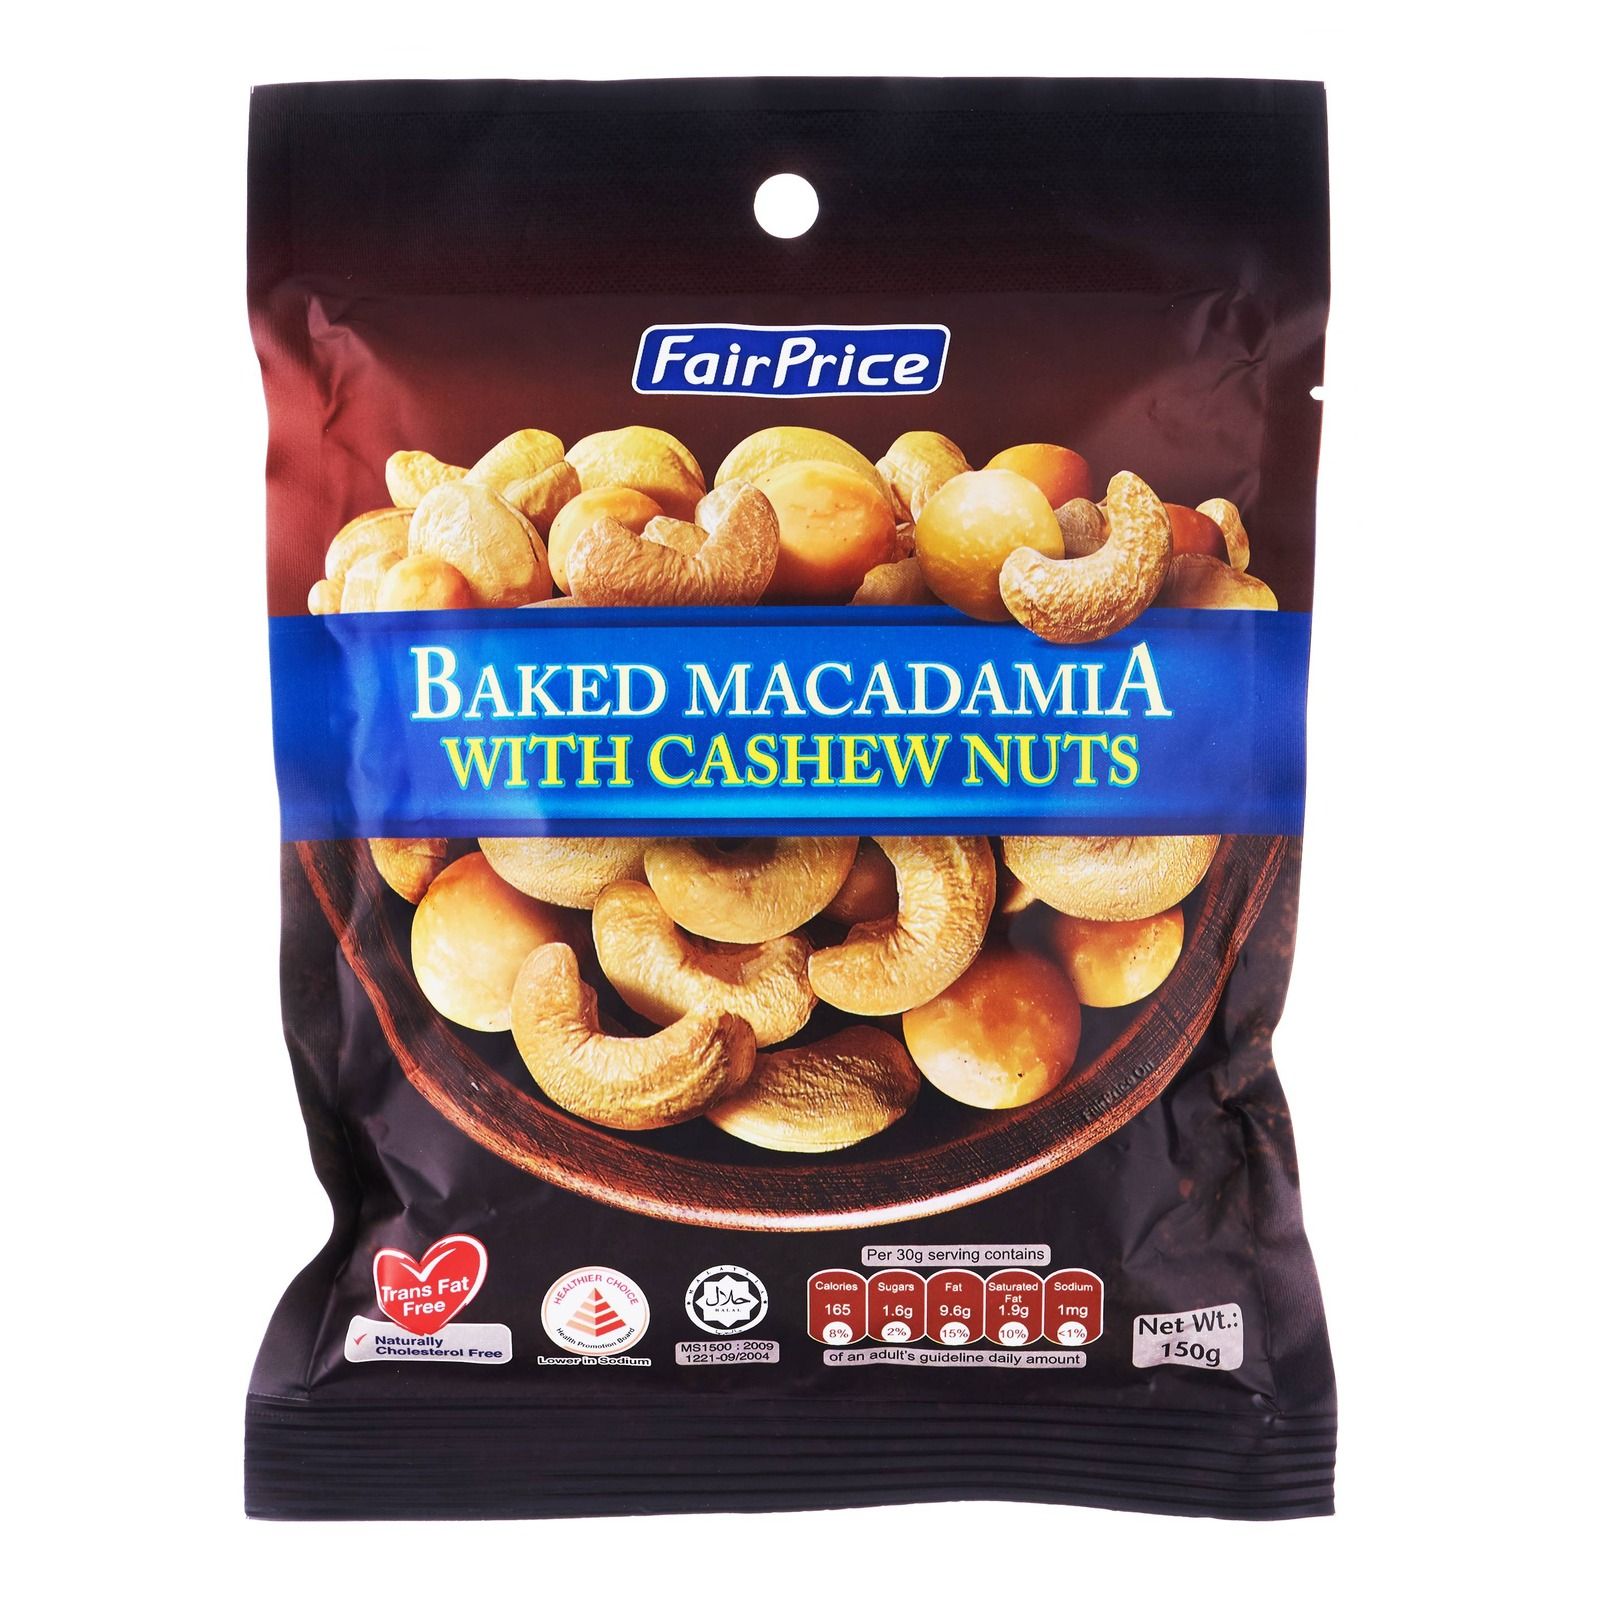 FairPrice Baked Macadamia with Cashew Nuts